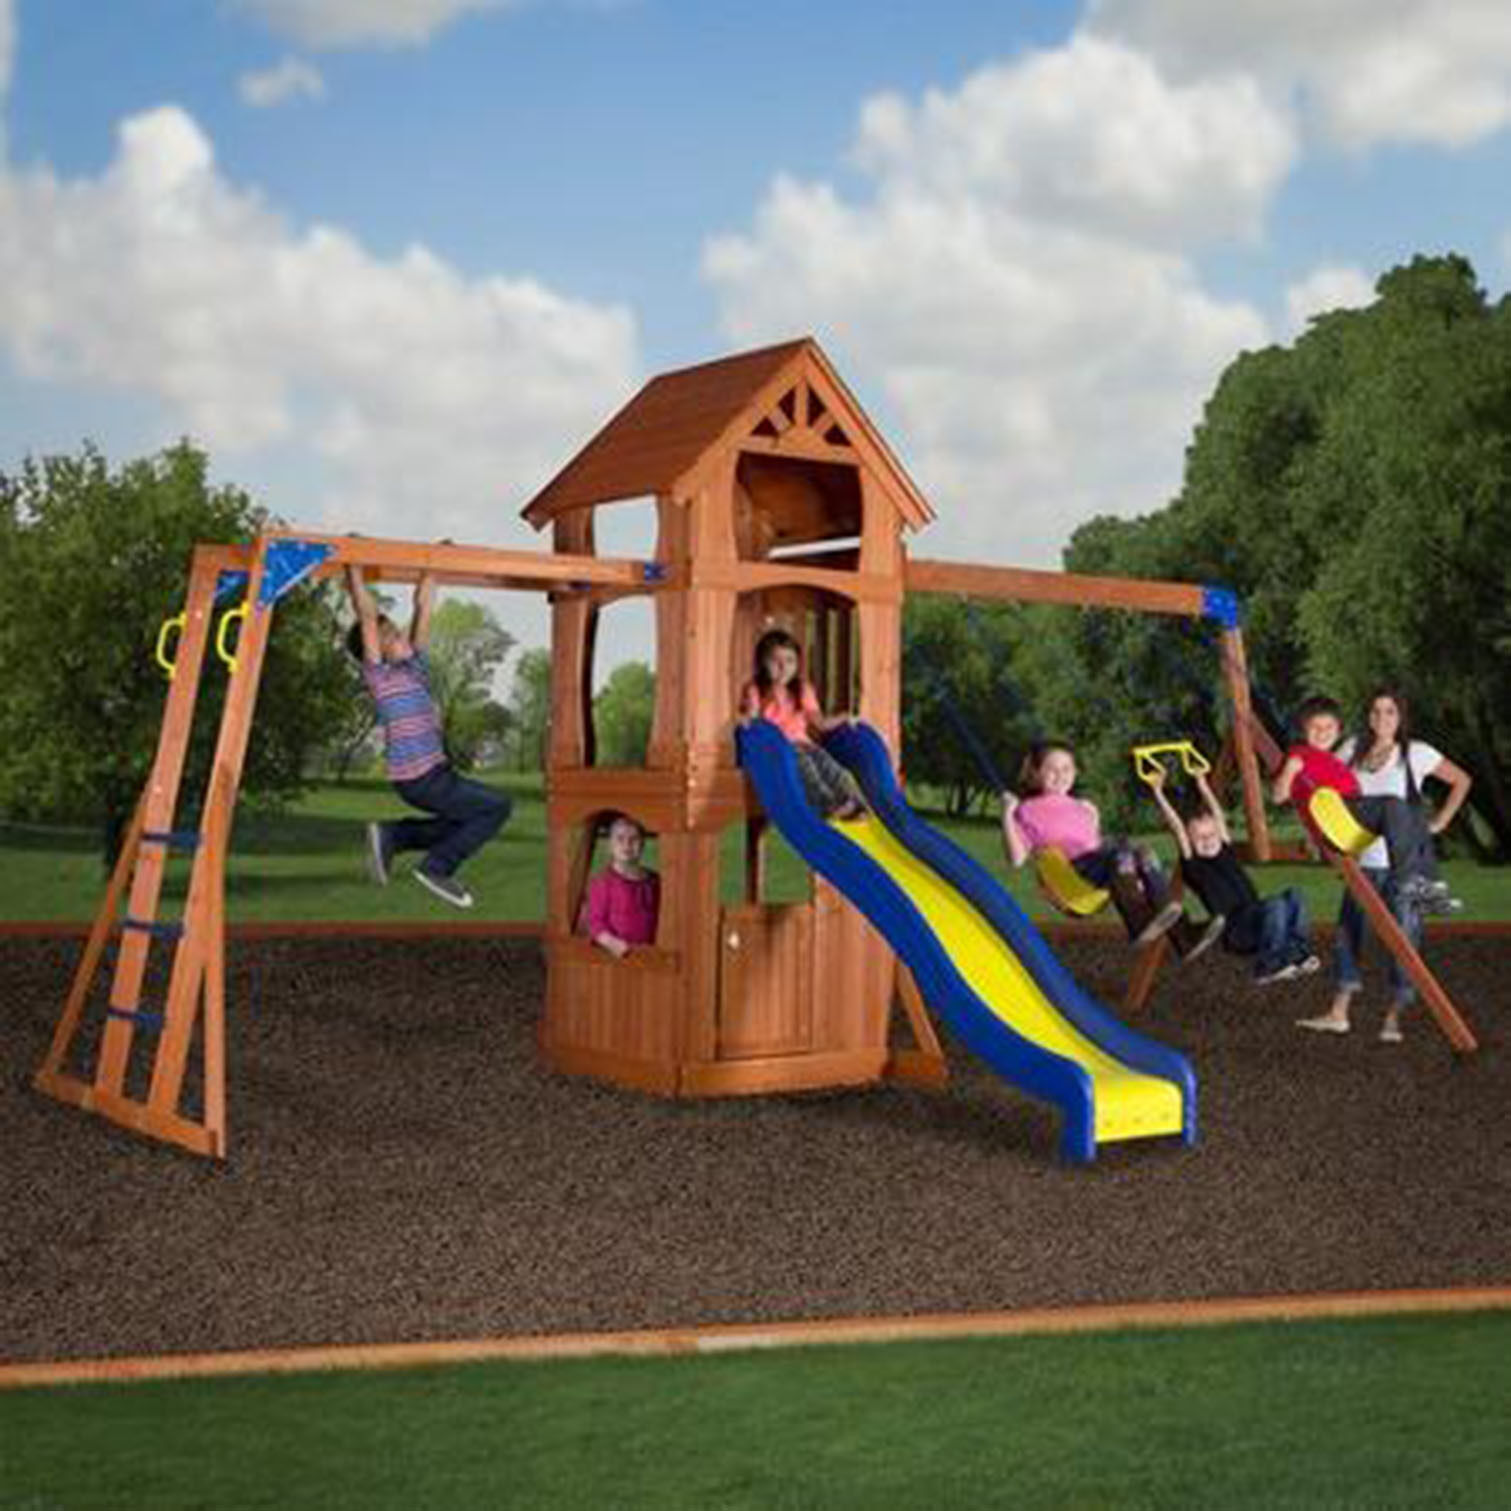 wooden swing set fort treehouse home playground backyard discovery